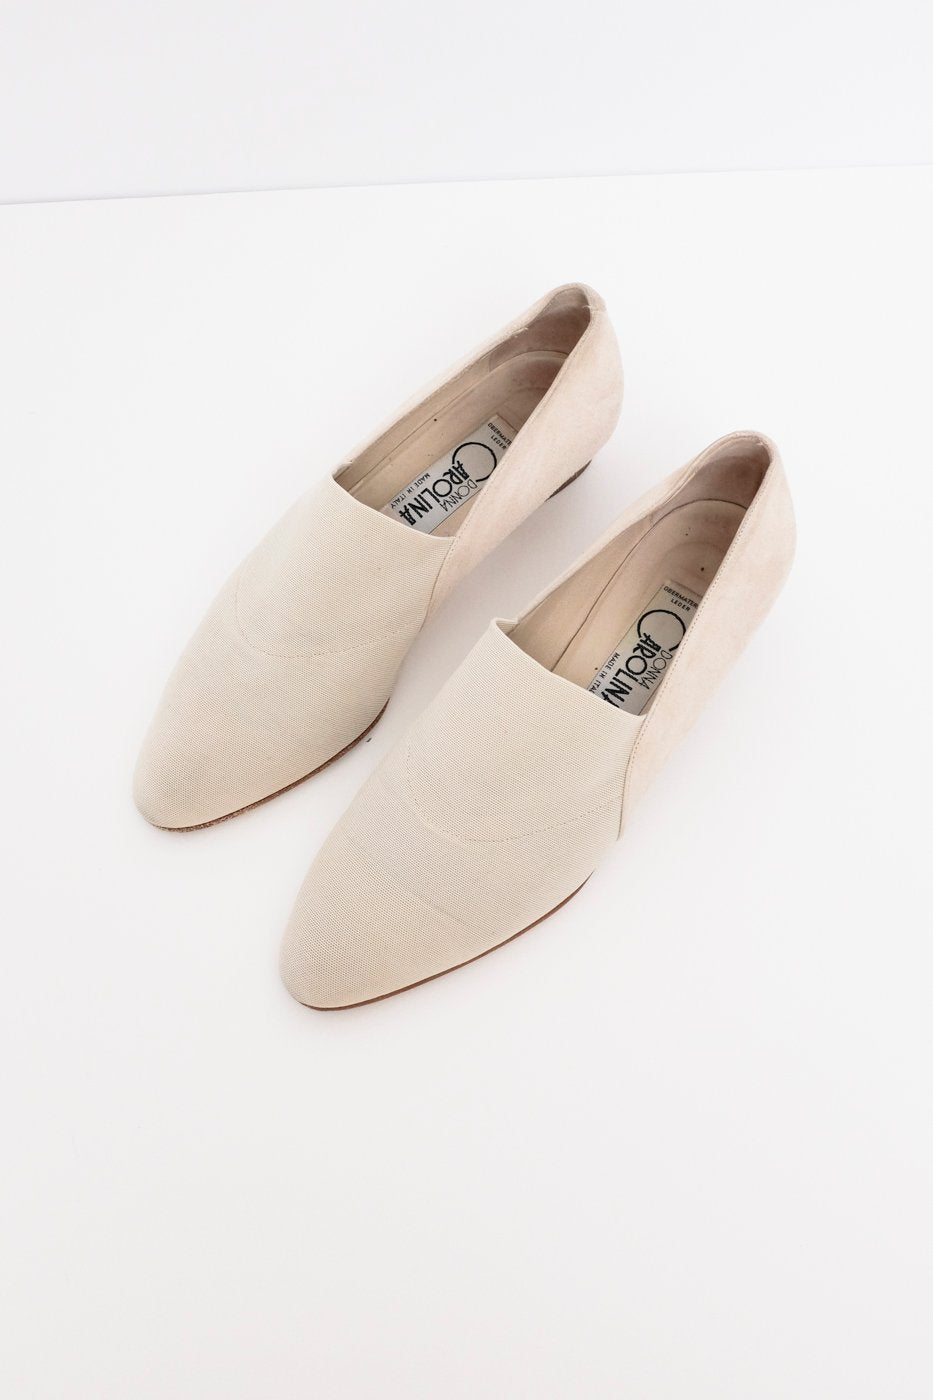 0421_CREAM SUEDE SLIPPER 39 WITH WOOD HEEL